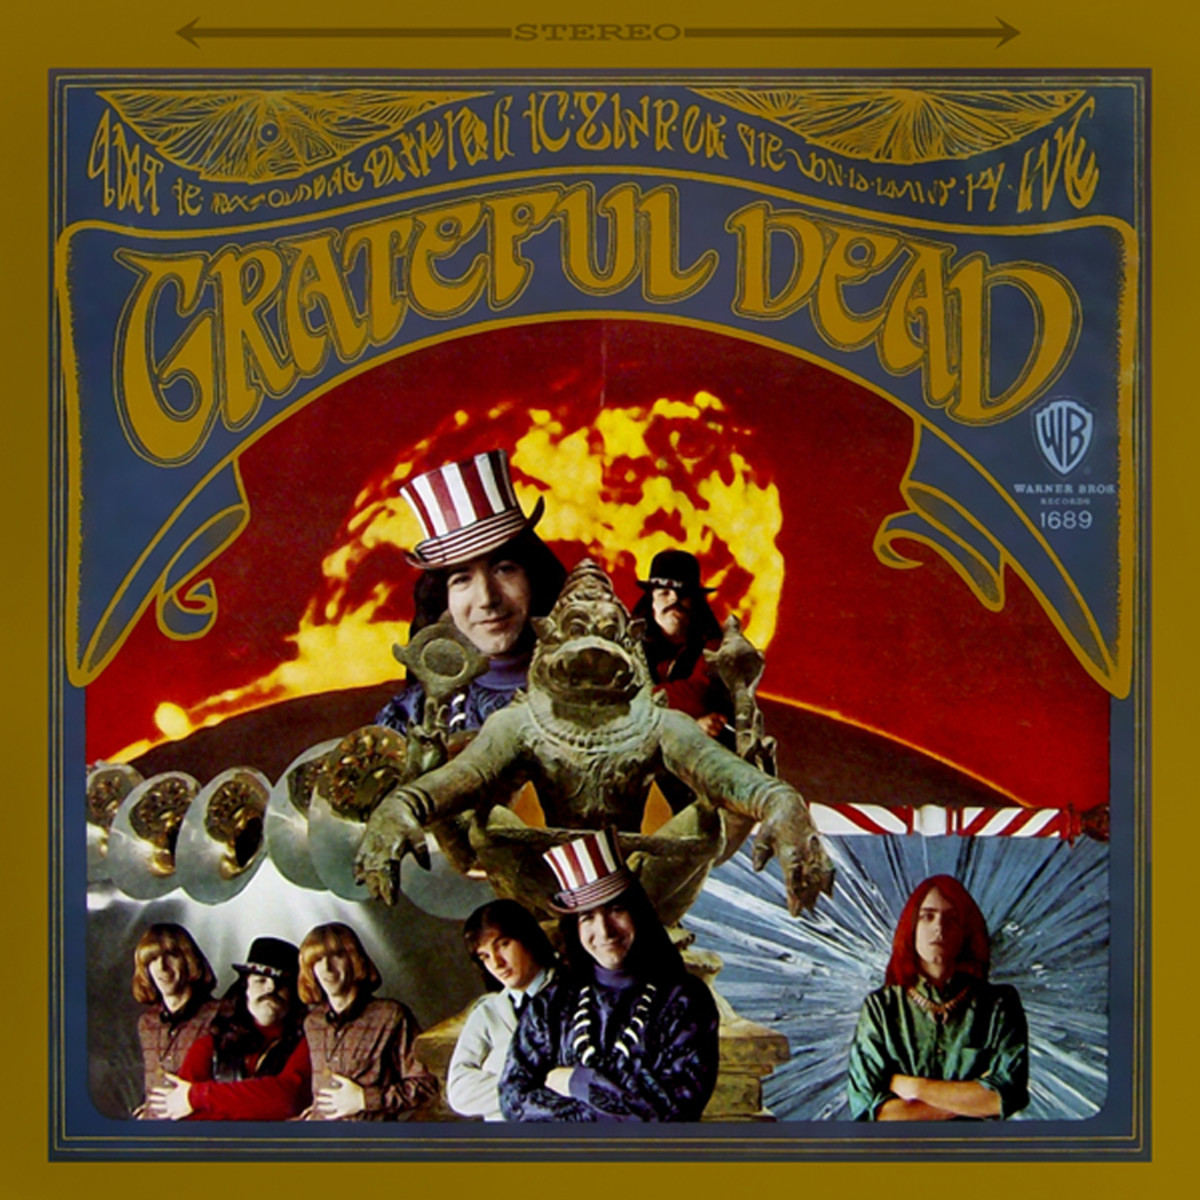 "The Grateful Dead ""Grateful Dead"" Warner Brothers Records WS 1689 12"" LP Vinyl Record (1967) Album Cover Art by Alton Kelley & Stanley Mouse"